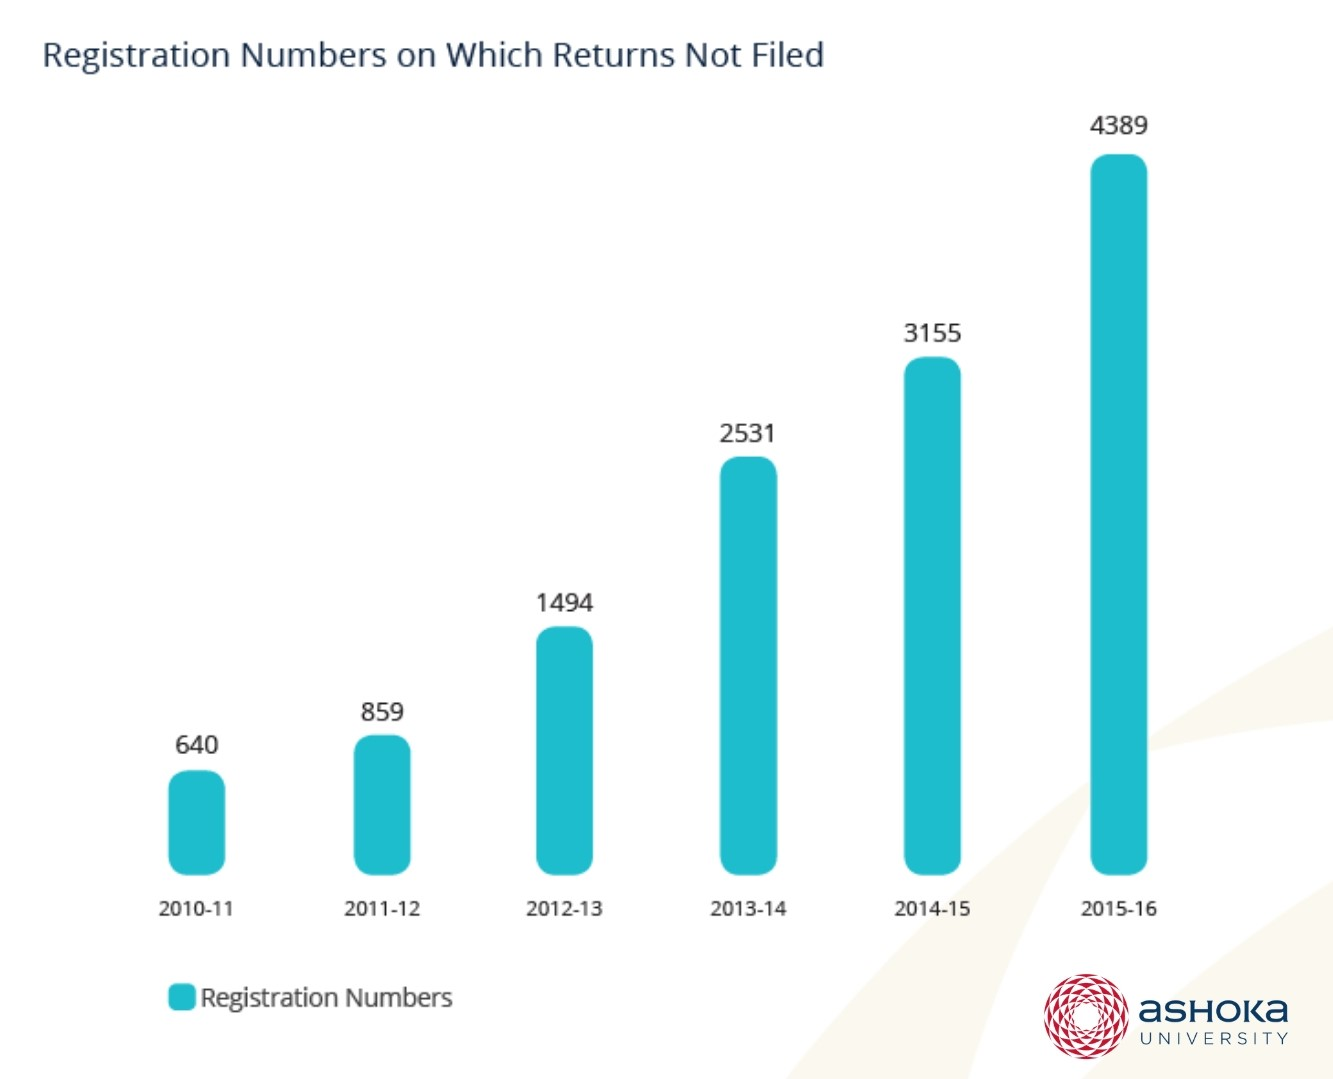 FCRA registration numbers on which returns were not filed